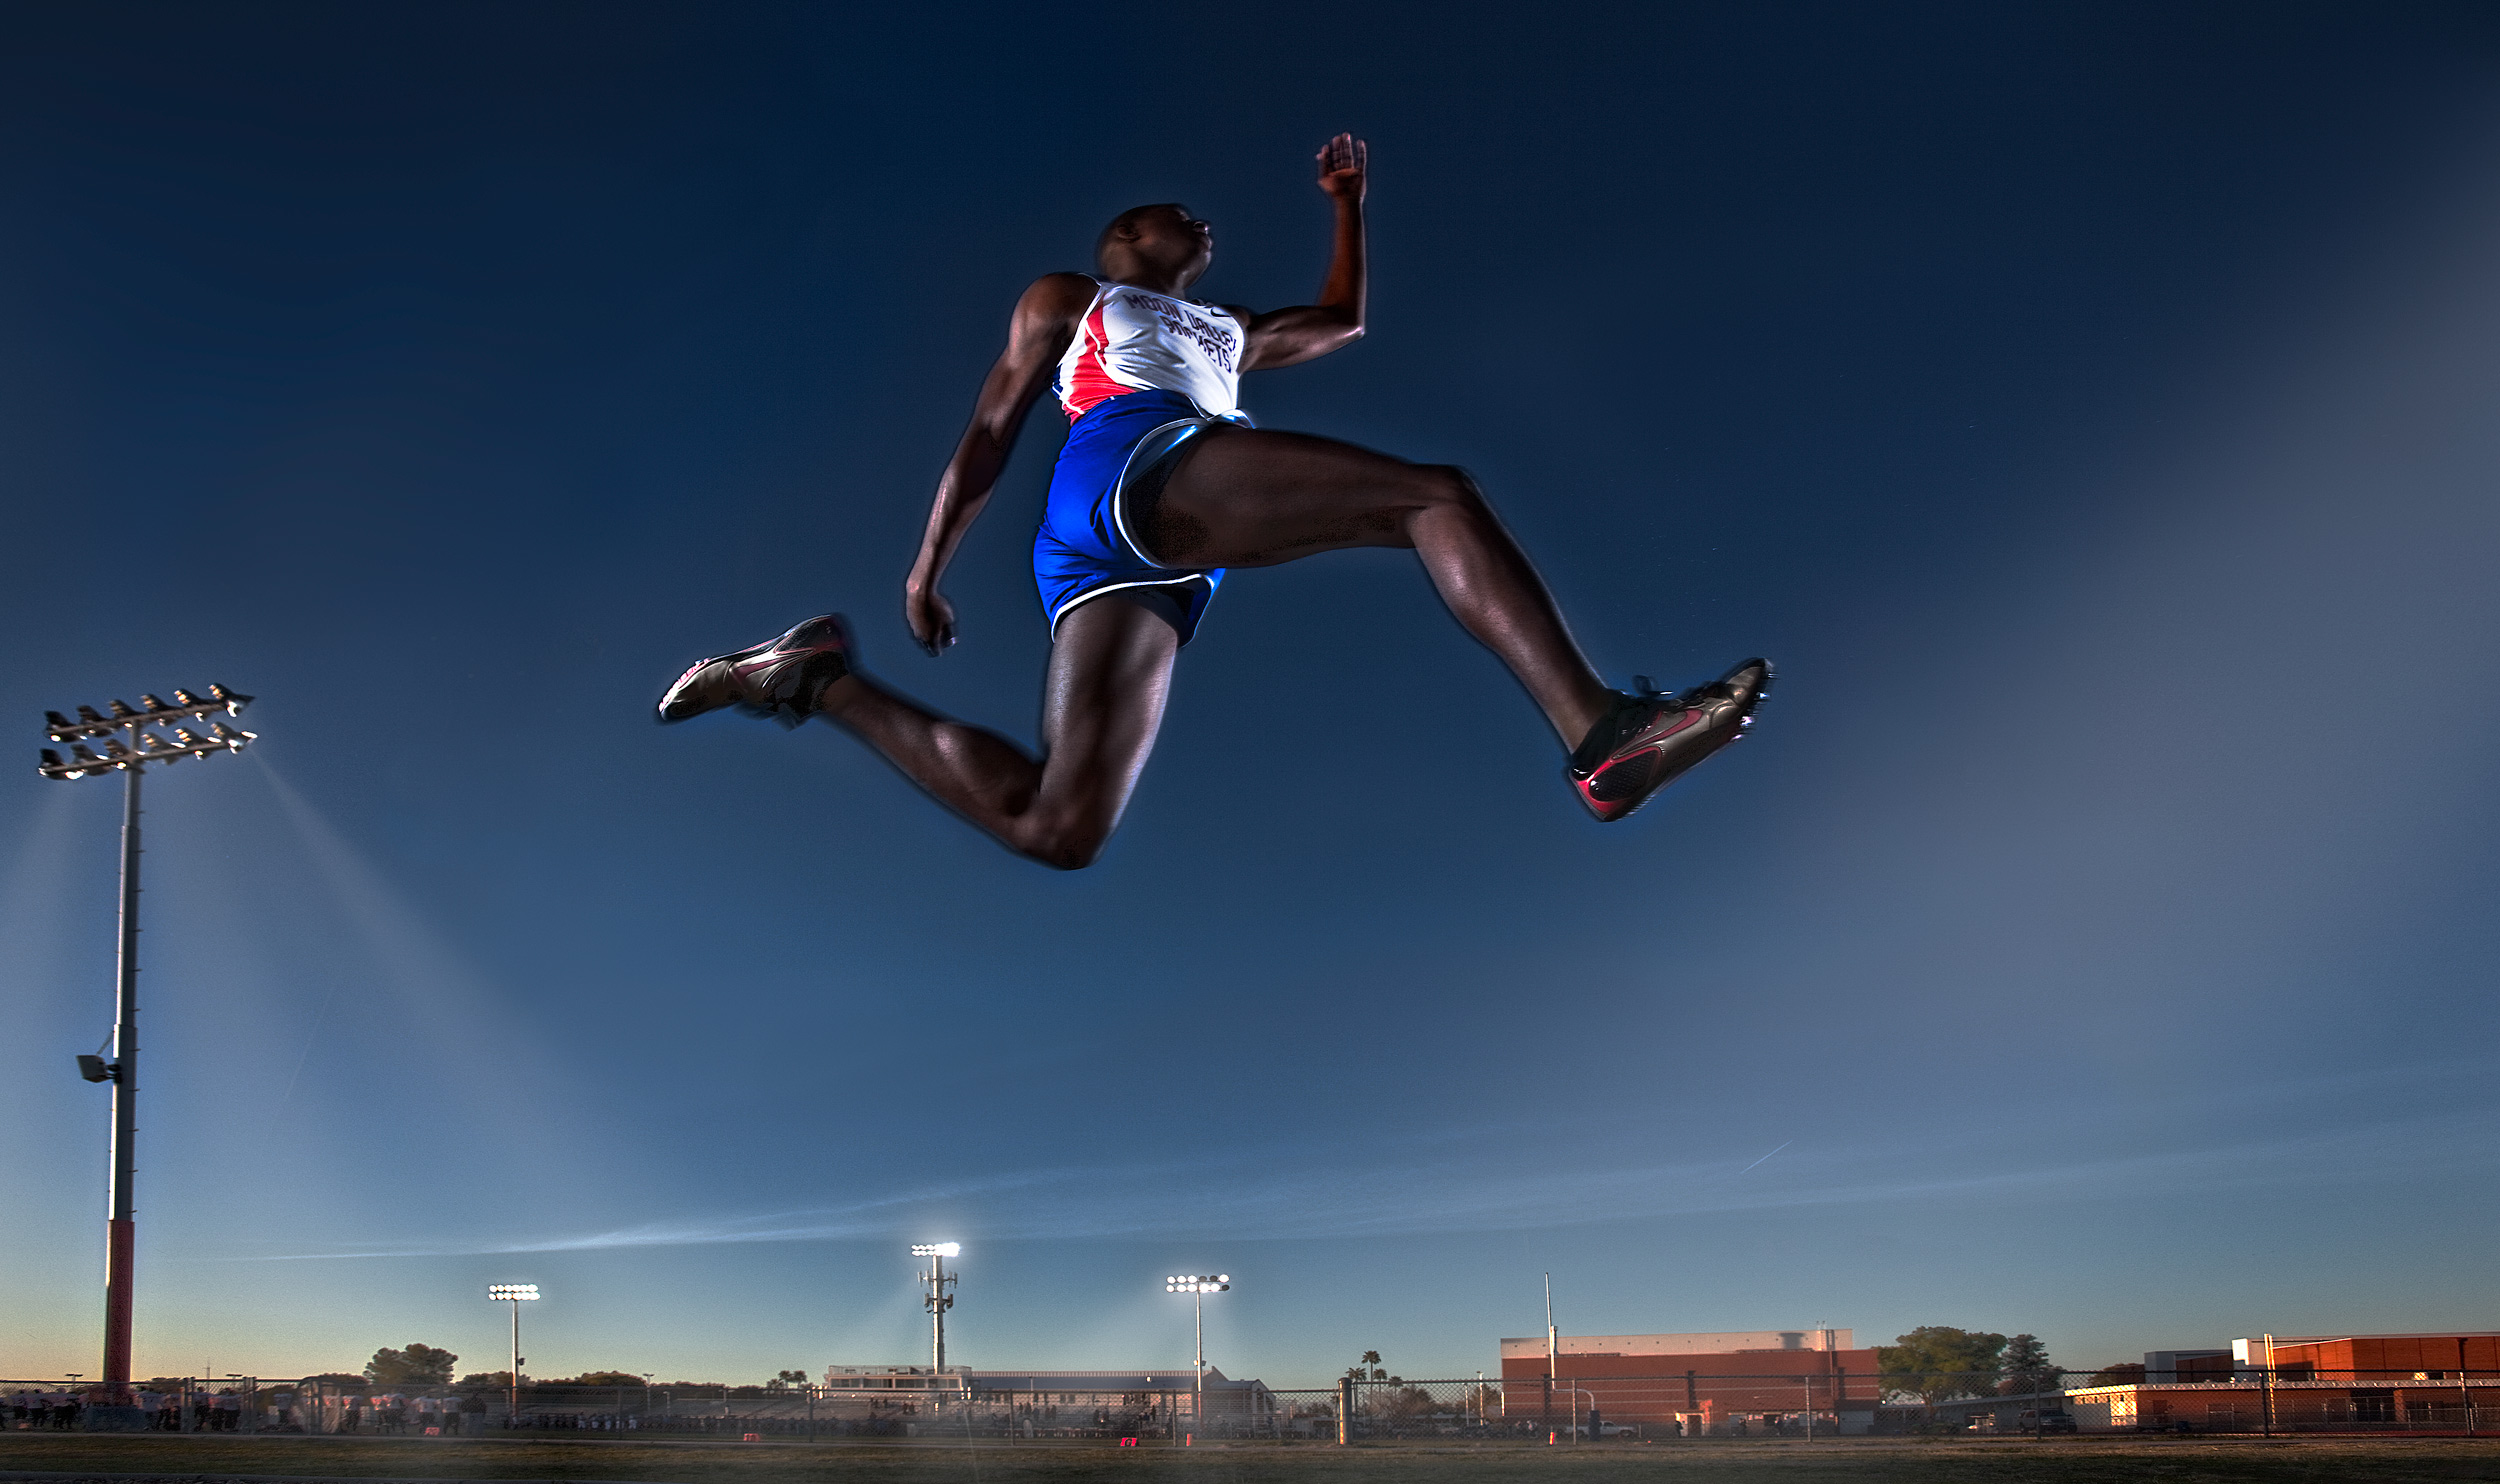 Track and Field Long Jump | Dovis Bird Agency Photography